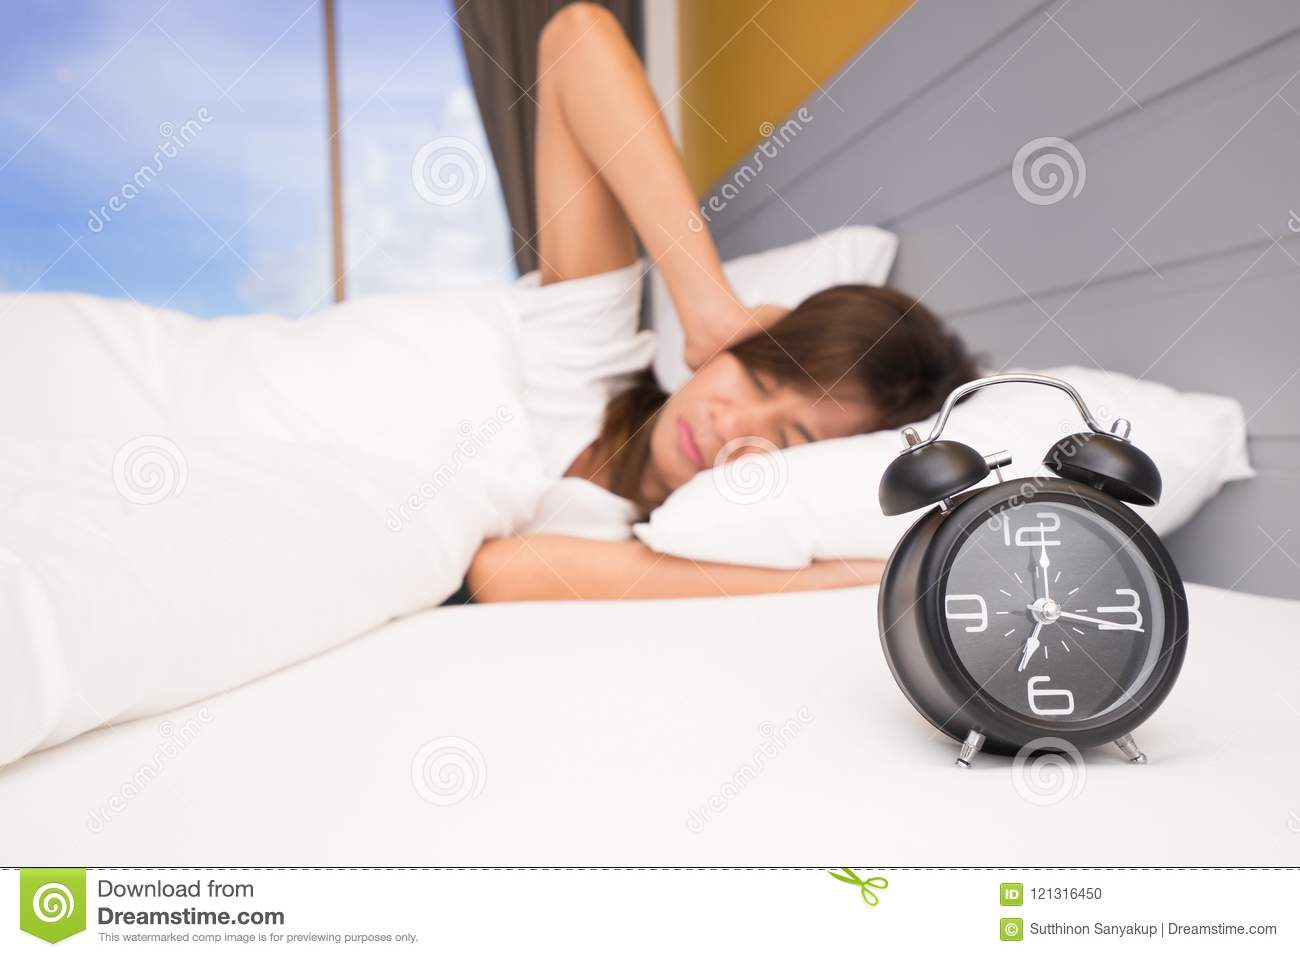 Wake up, Asian woman in bed extending hand to alarm clock. girl turns off the alarm clock waking up in the morning. Young sleeping